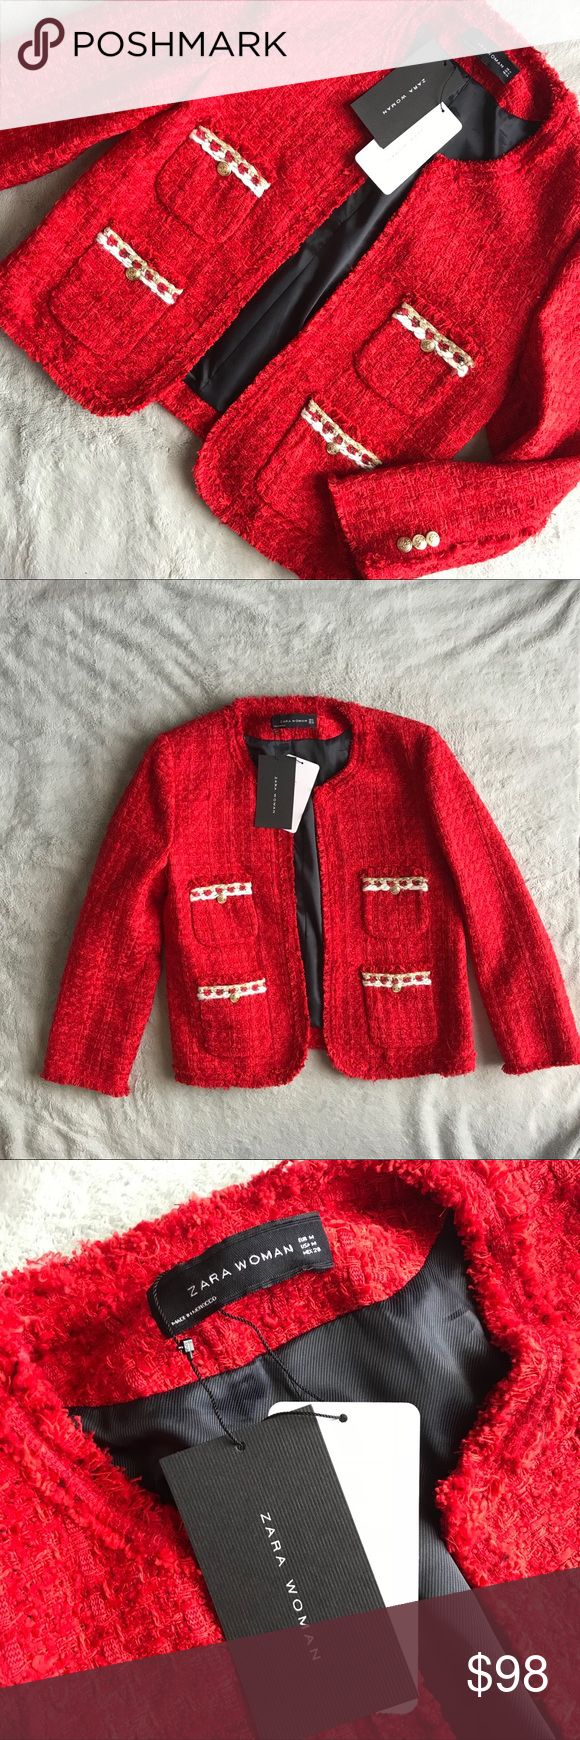 NWT Zara Tweed Boucle Blazer Jacket Red Gold Brand new, never worn. Tweed boucle style jacket by Zara in vibrant red with gold and white detailing. From 2016 collection, hard to find. Blazer silhouette with boxy structured shoulders and a feminine fit. Double front pockets accented with gold & white trim and a decorative gold button. Fully lined. Note: minor wear from storage typical to this fabric. Size medium, see photos for measurements. Zara Jackets & Coats Blazers